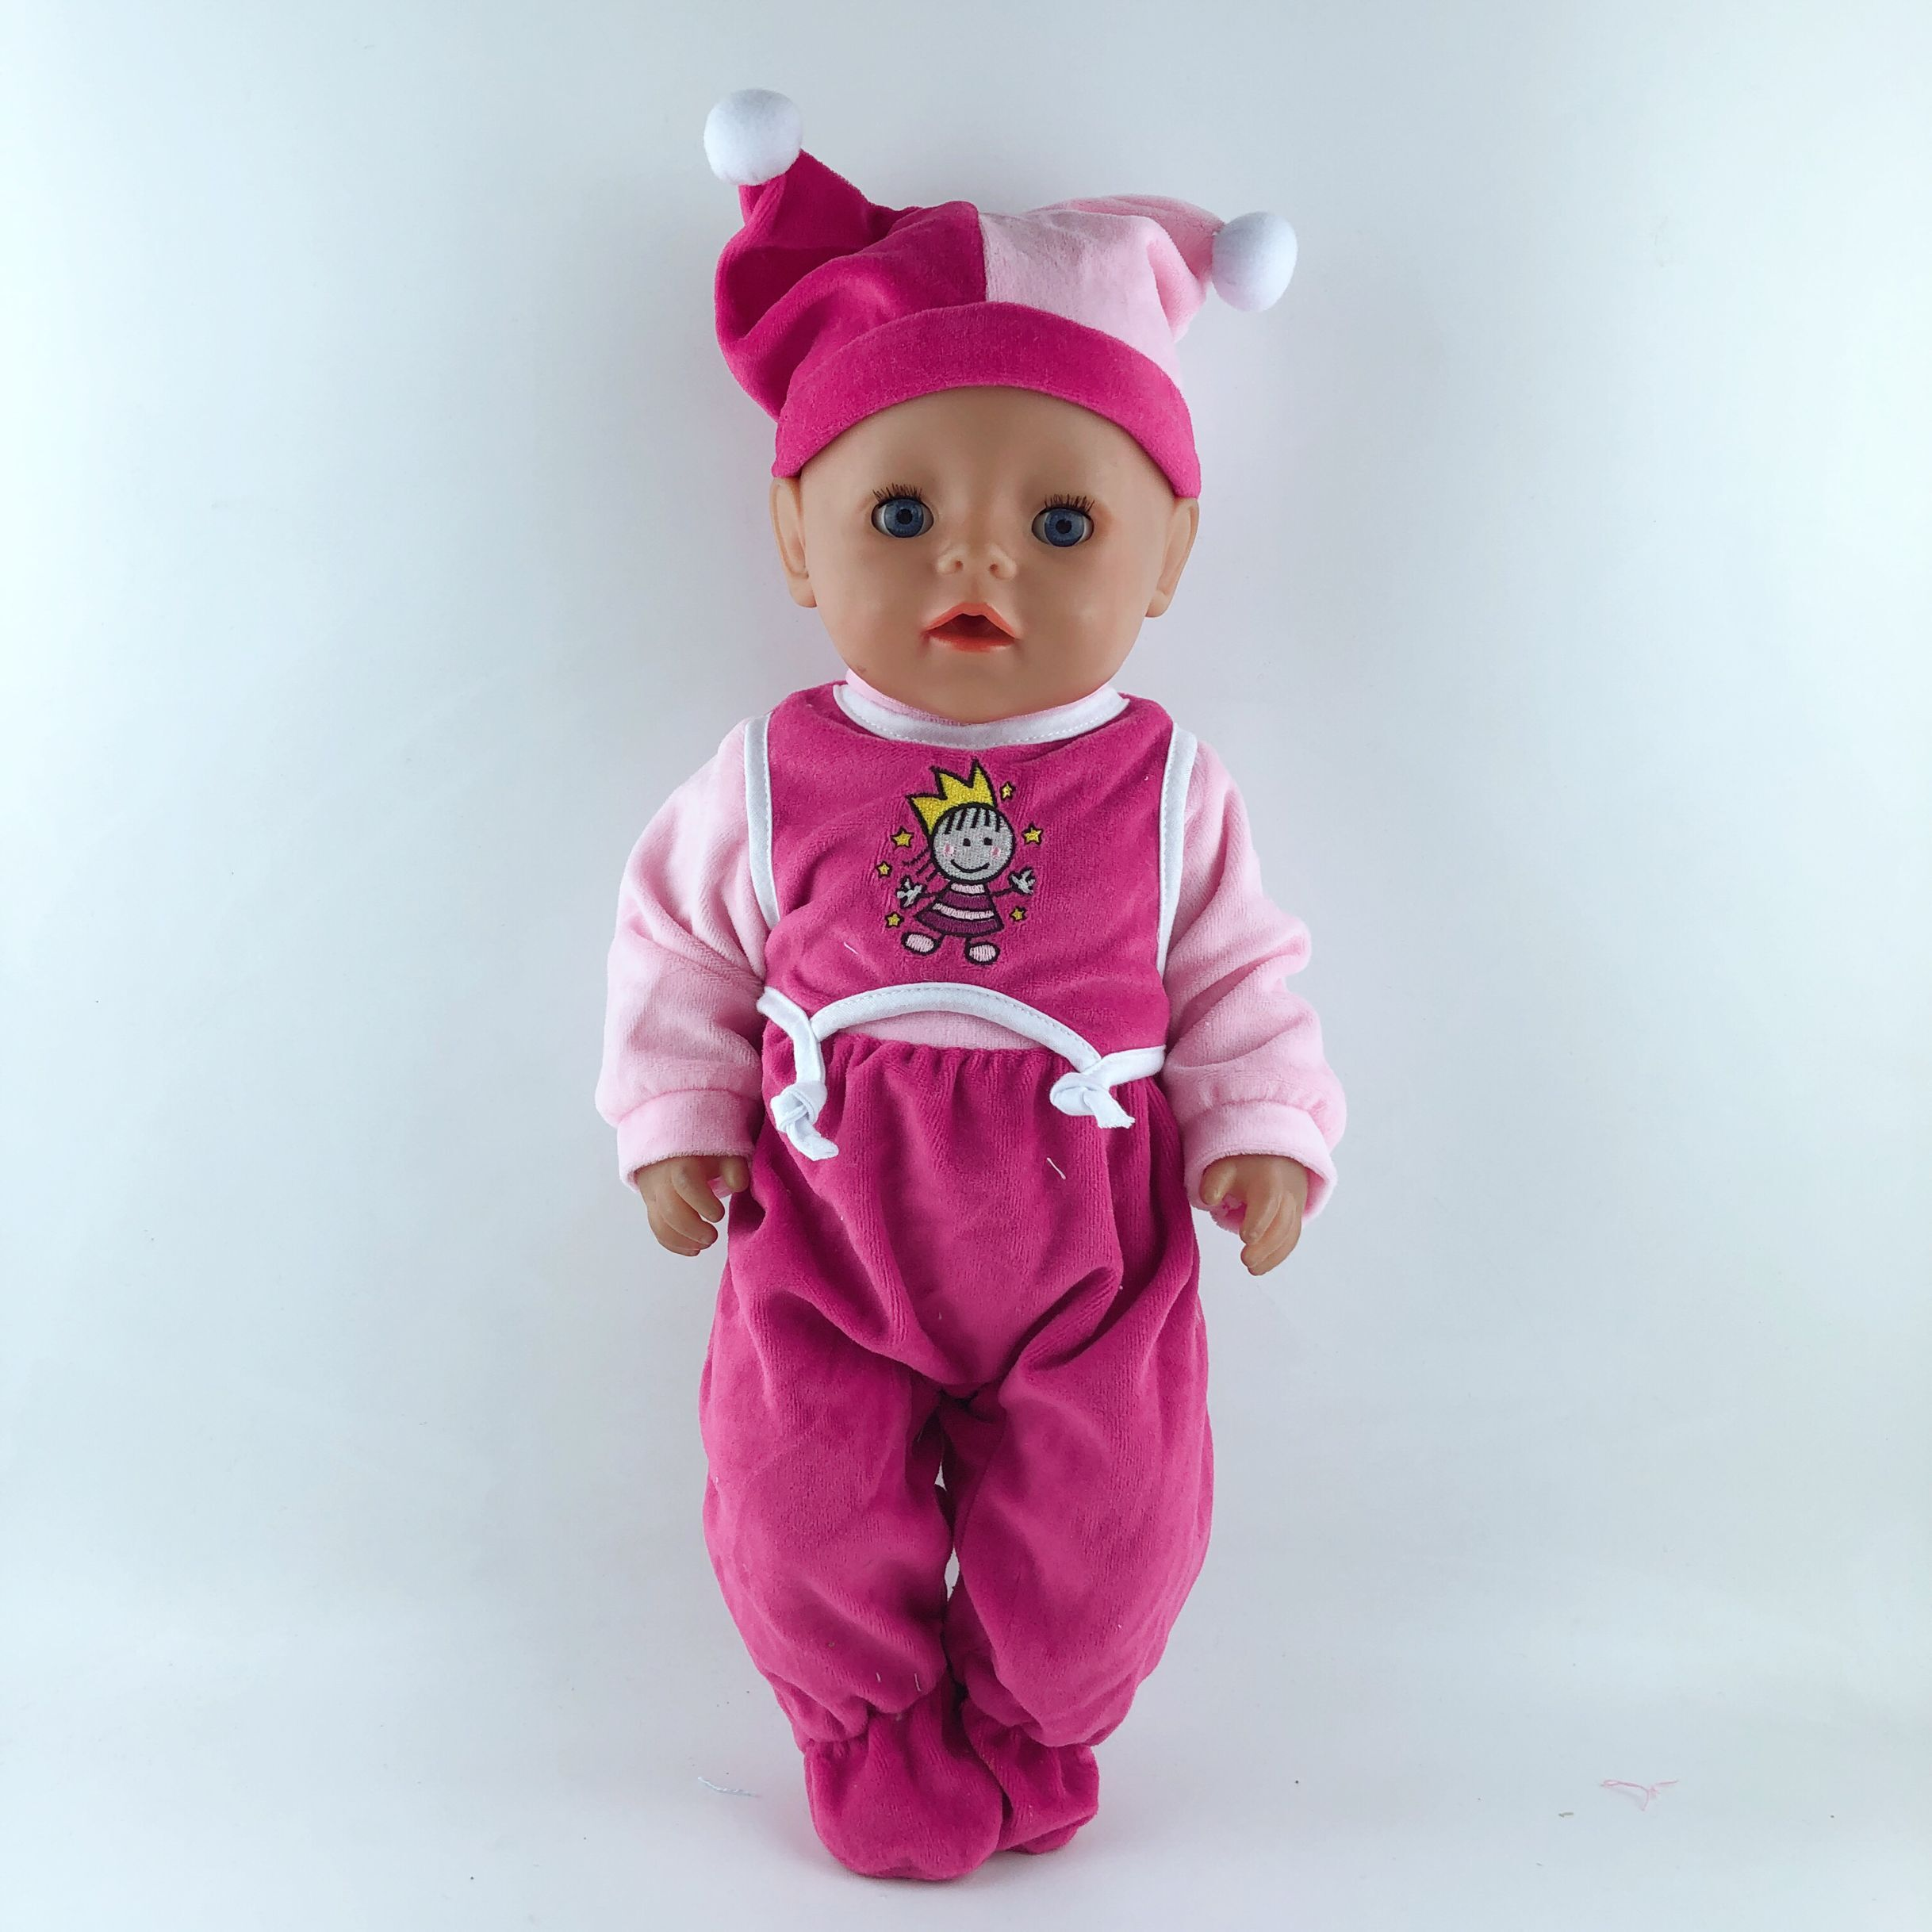 2pcs In 1, New Hat+Suit Fit For 17 Inch Baby Doll 43cm Dolls Clothes